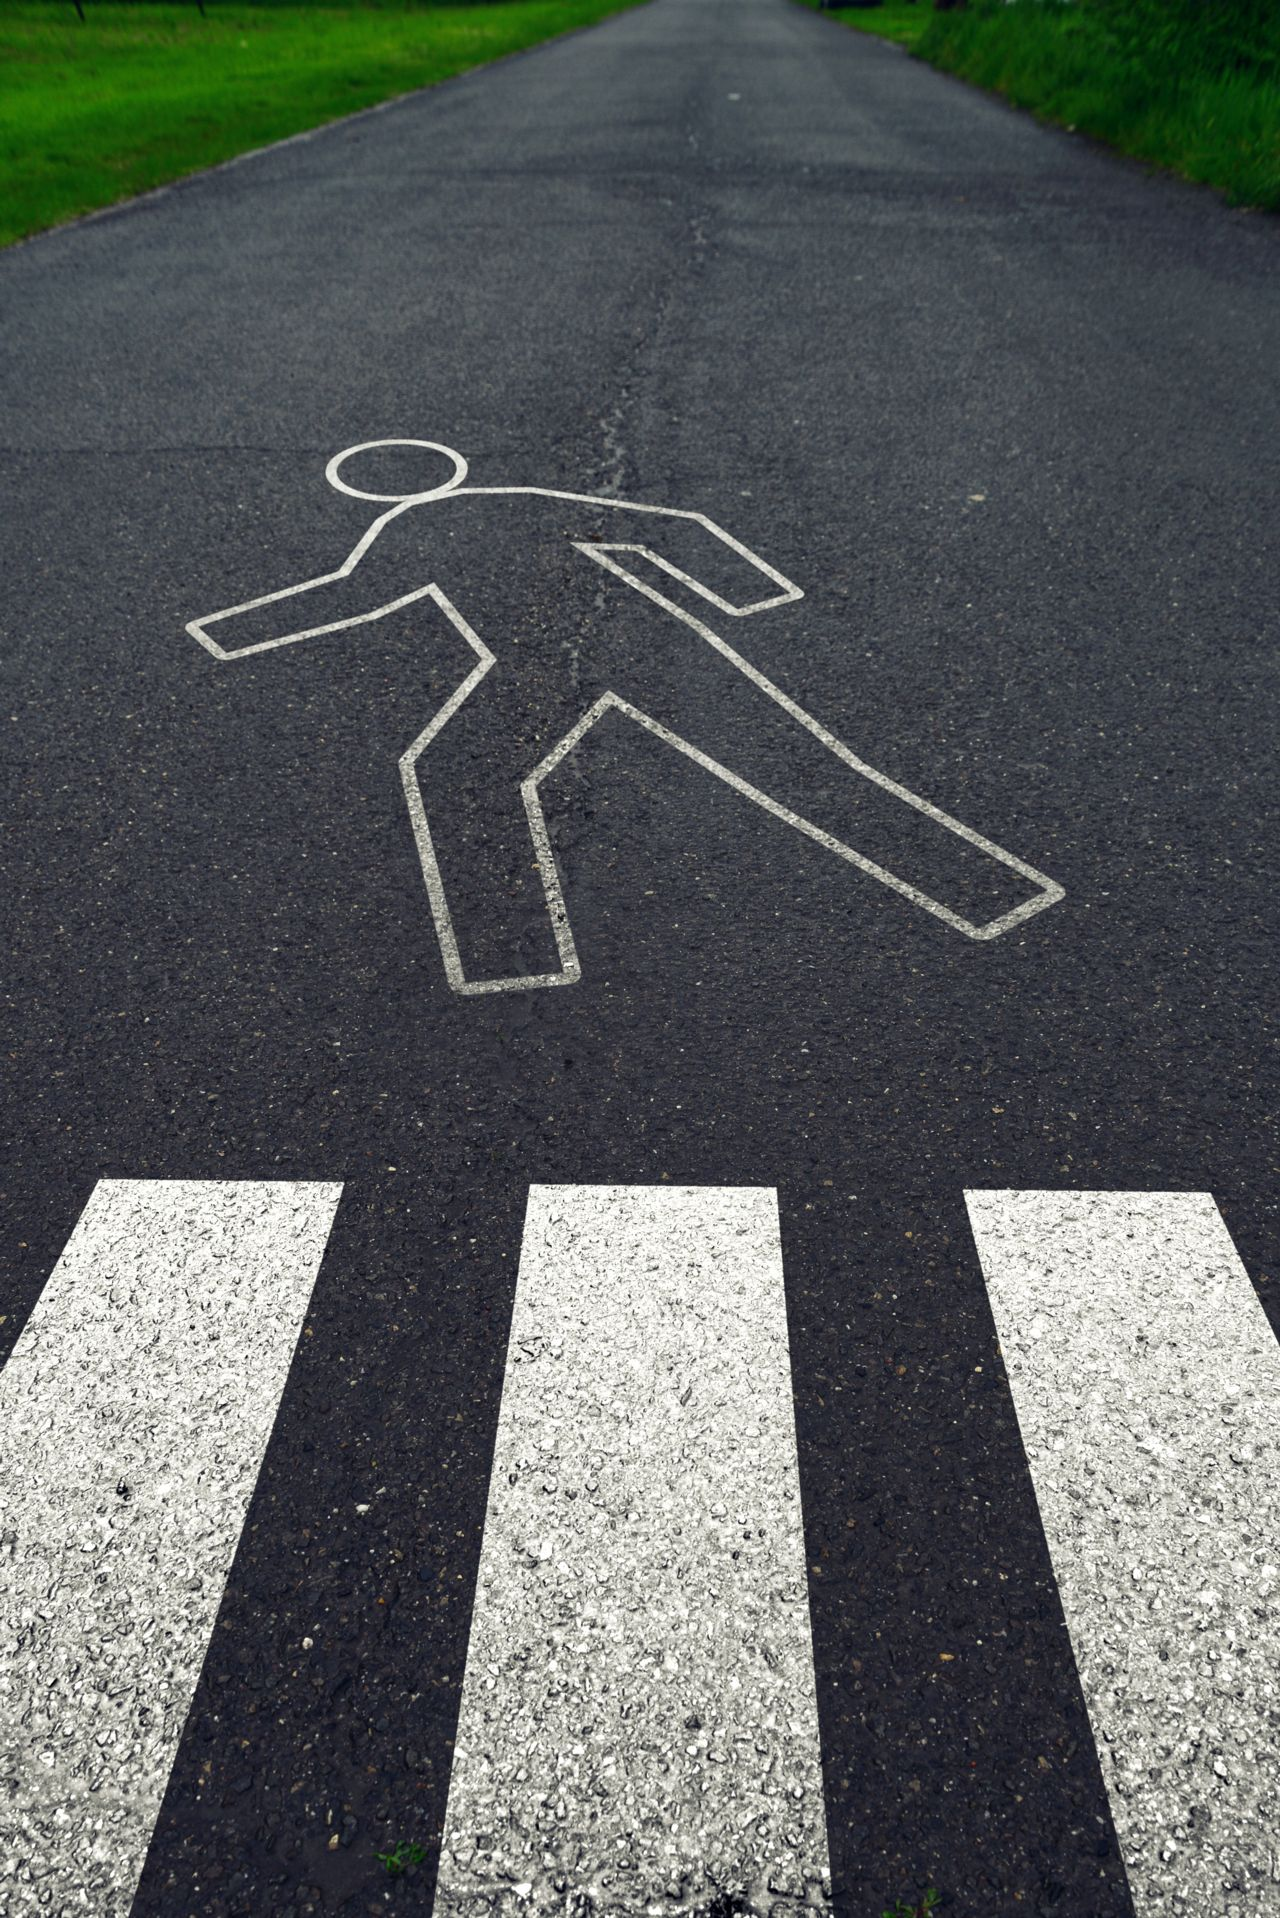 A Chalk Drawing on the Road of a Pedestrian Walking